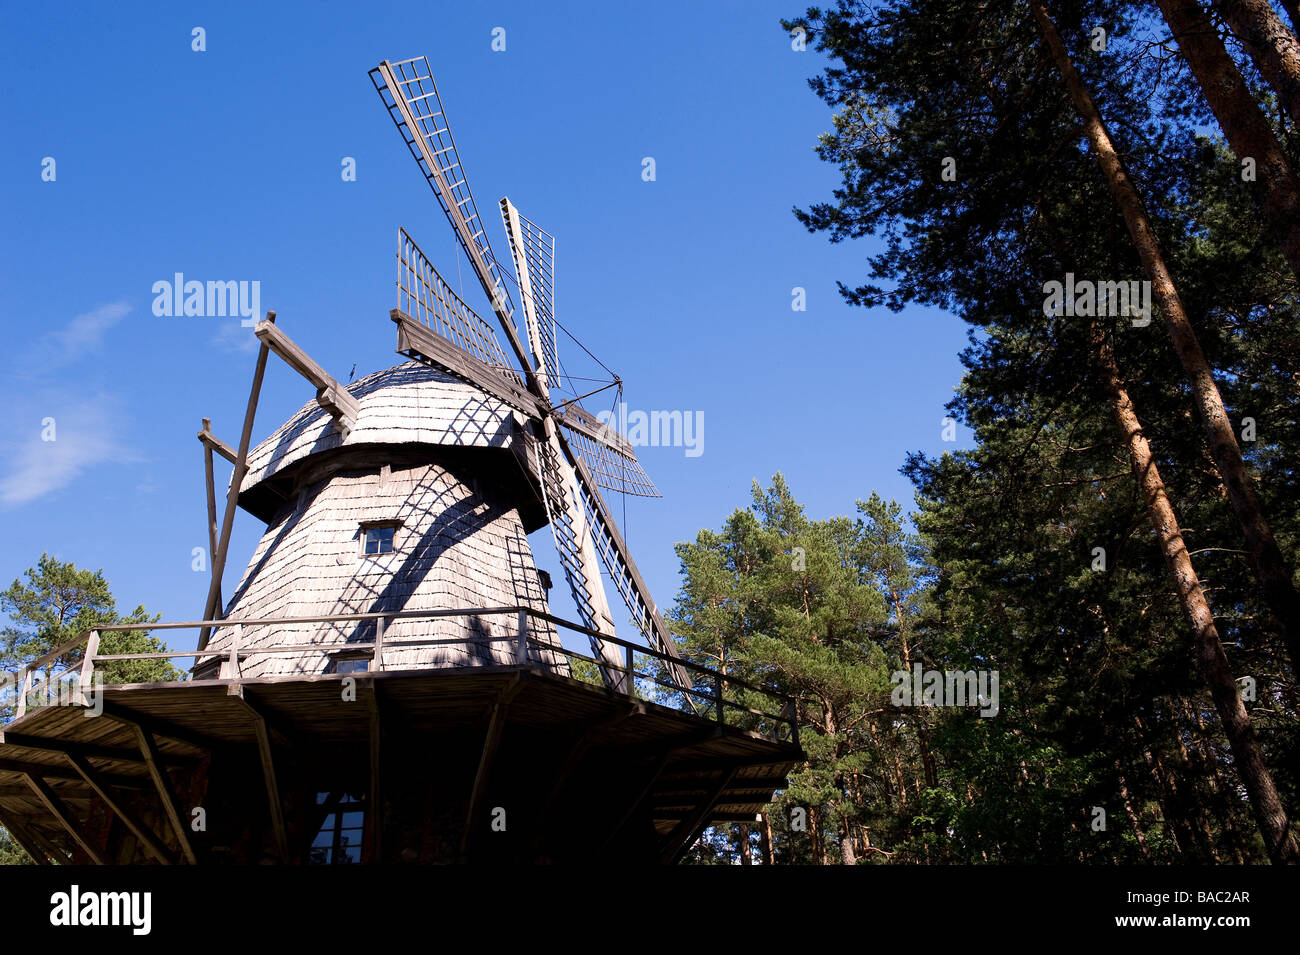 Latvia (Baltic States), Riga, the Ethnographic Open Air Museum - Stock Image